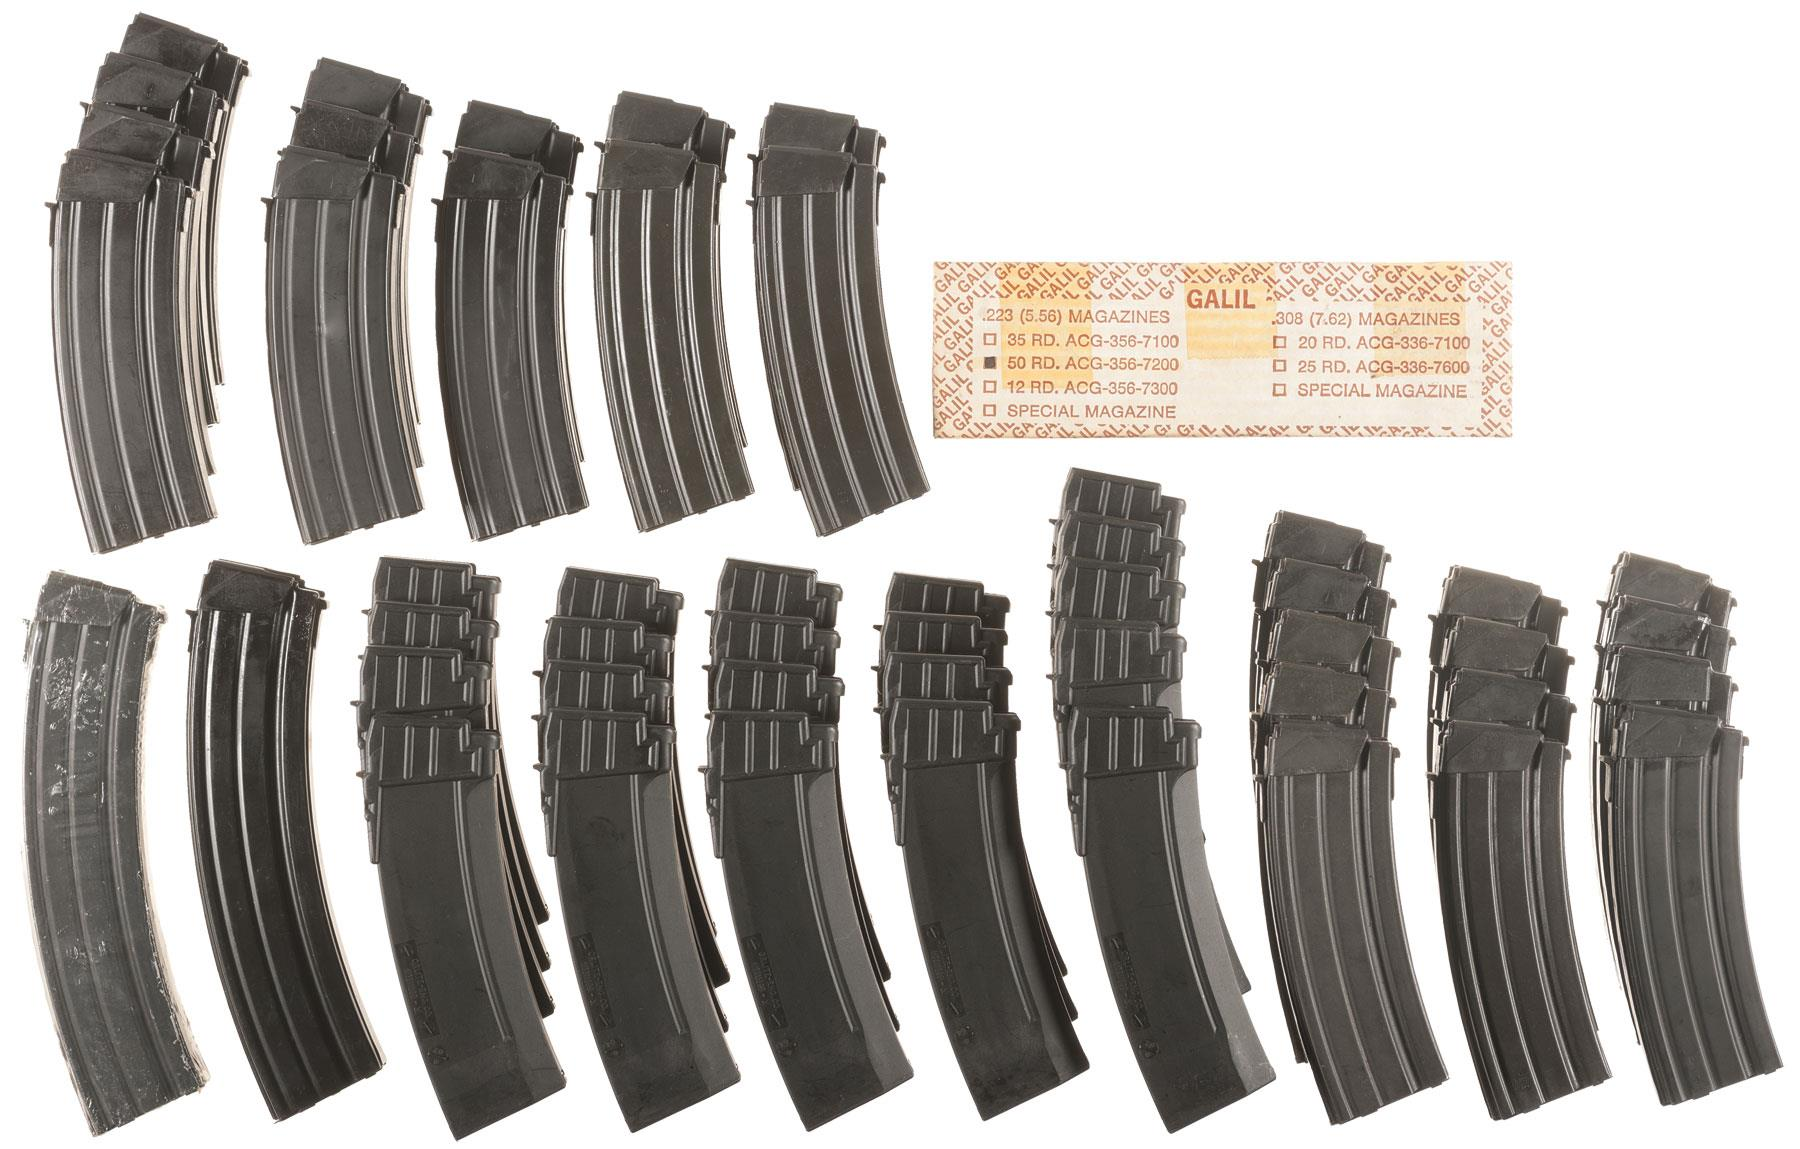 Large Grouping of Galil/Golani Sporter Magazines